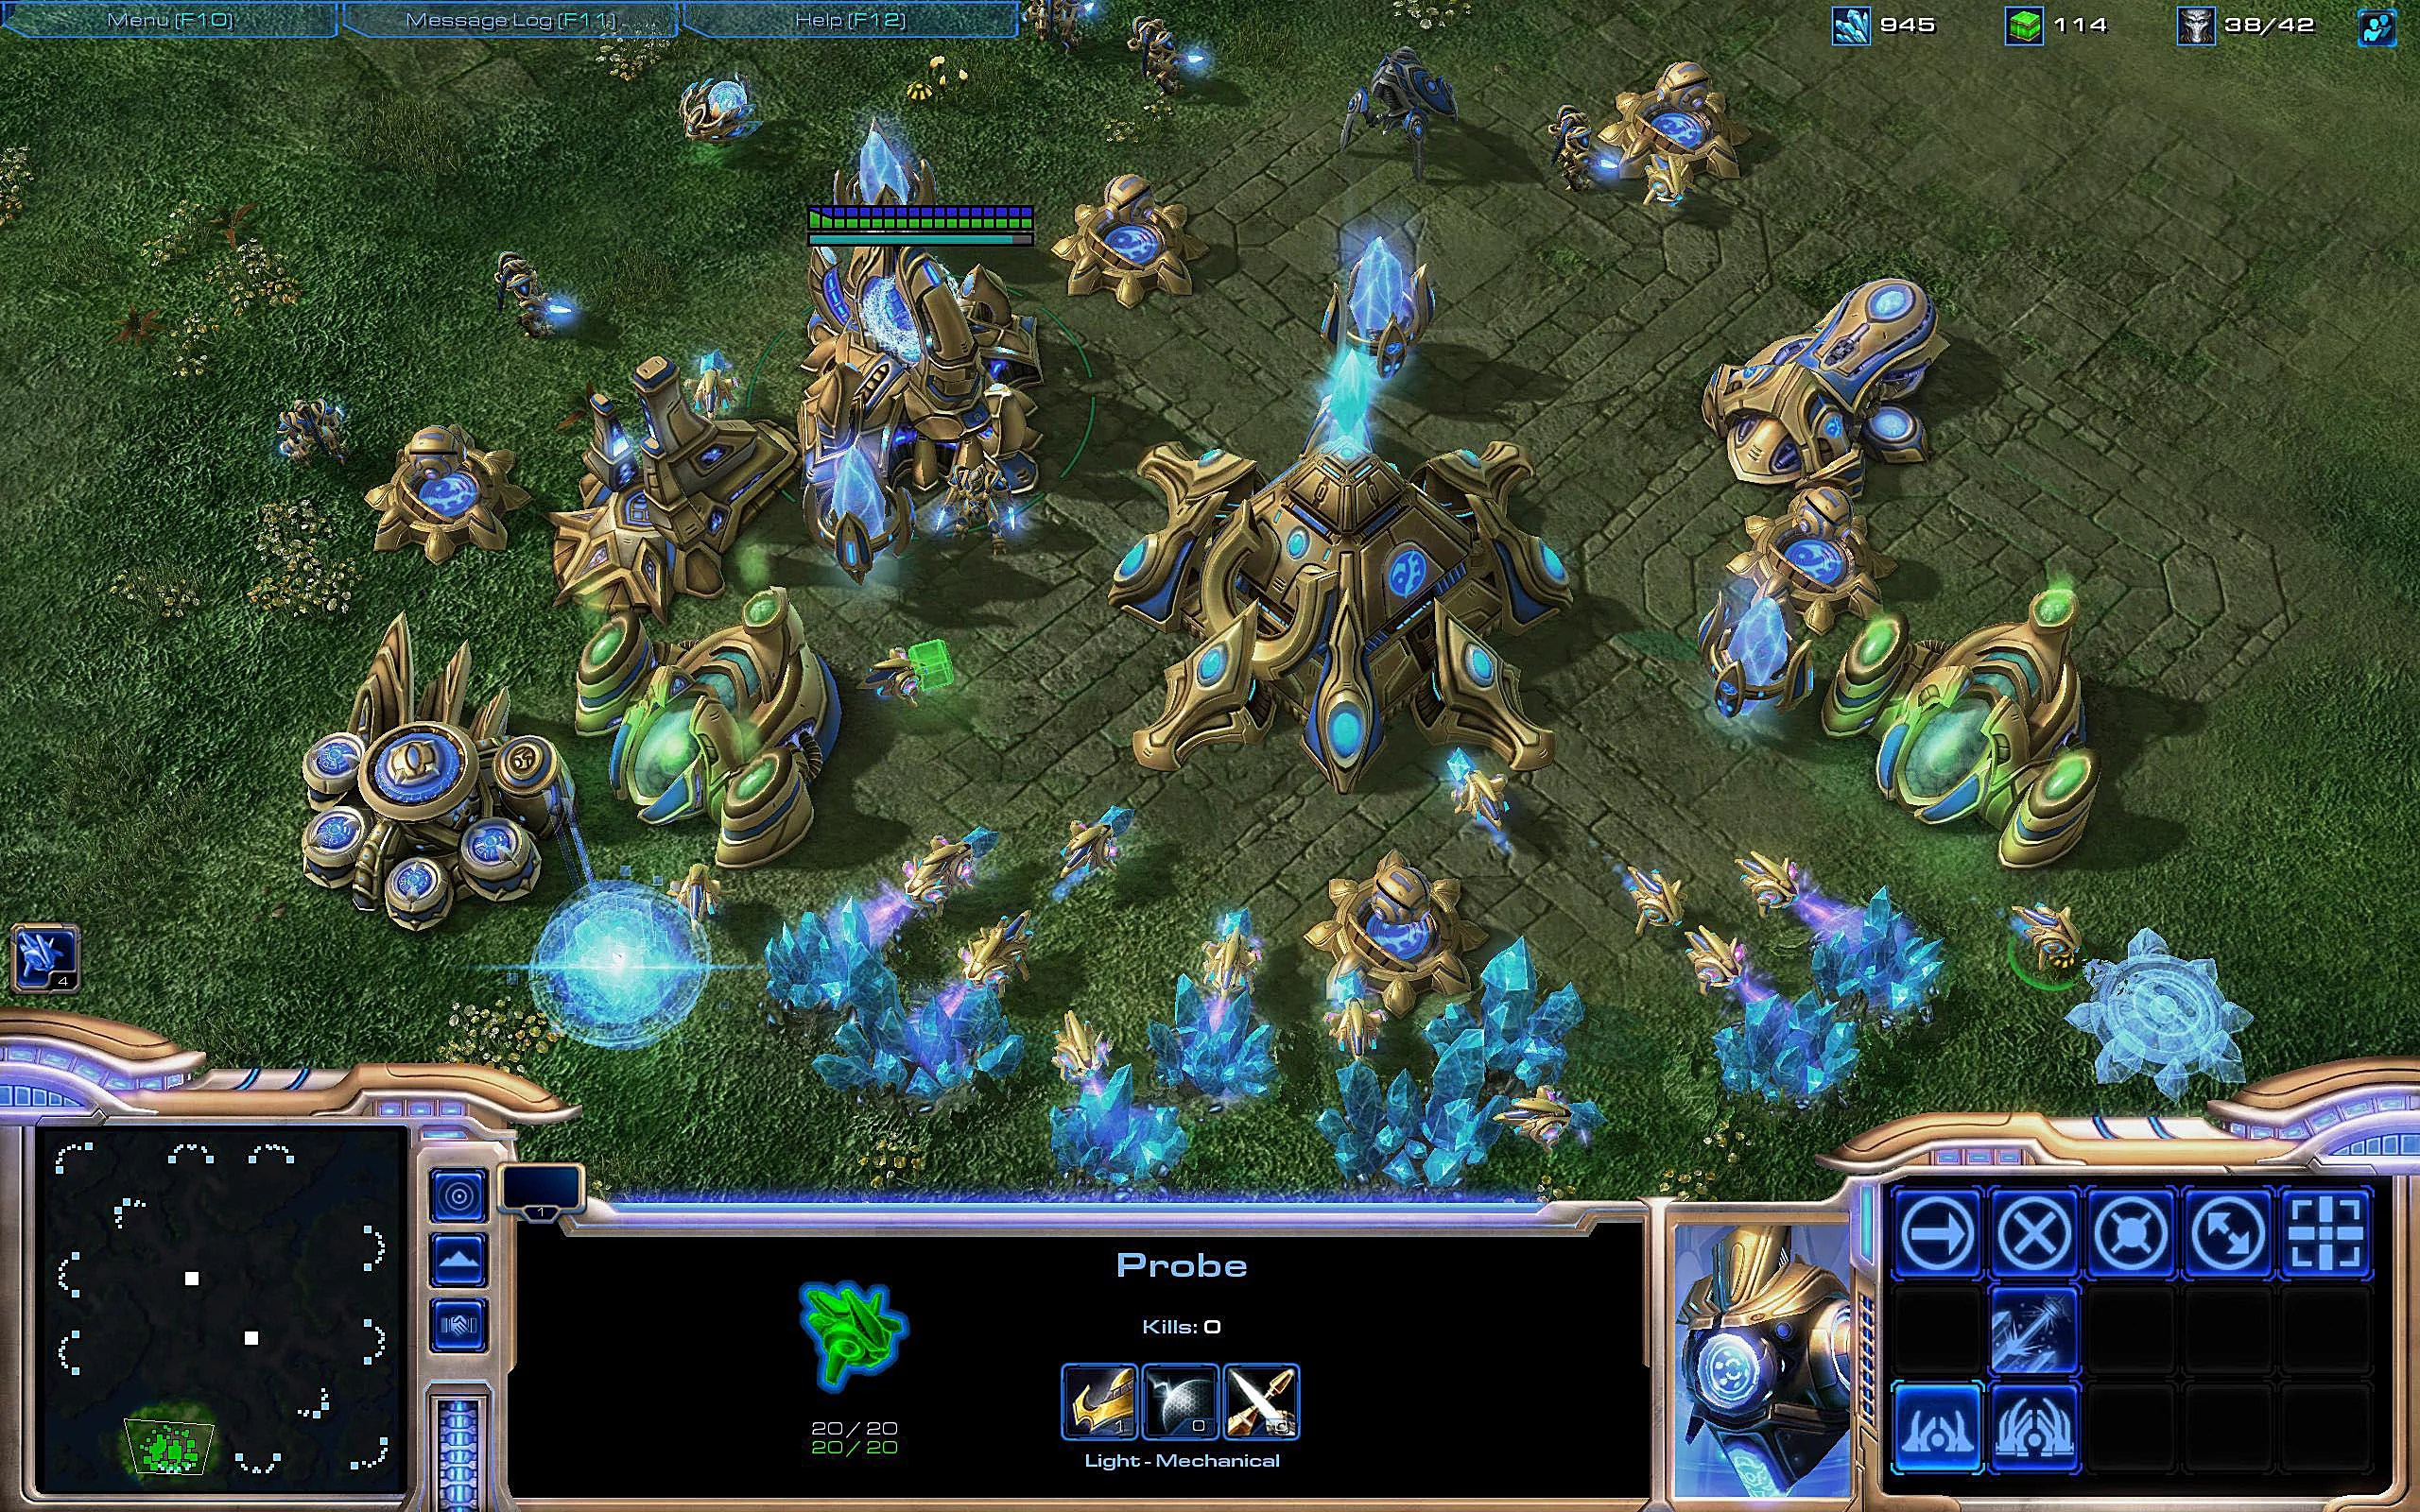 Has Starcraft 2 Lost Its Popularity In ESports Starcraft 2